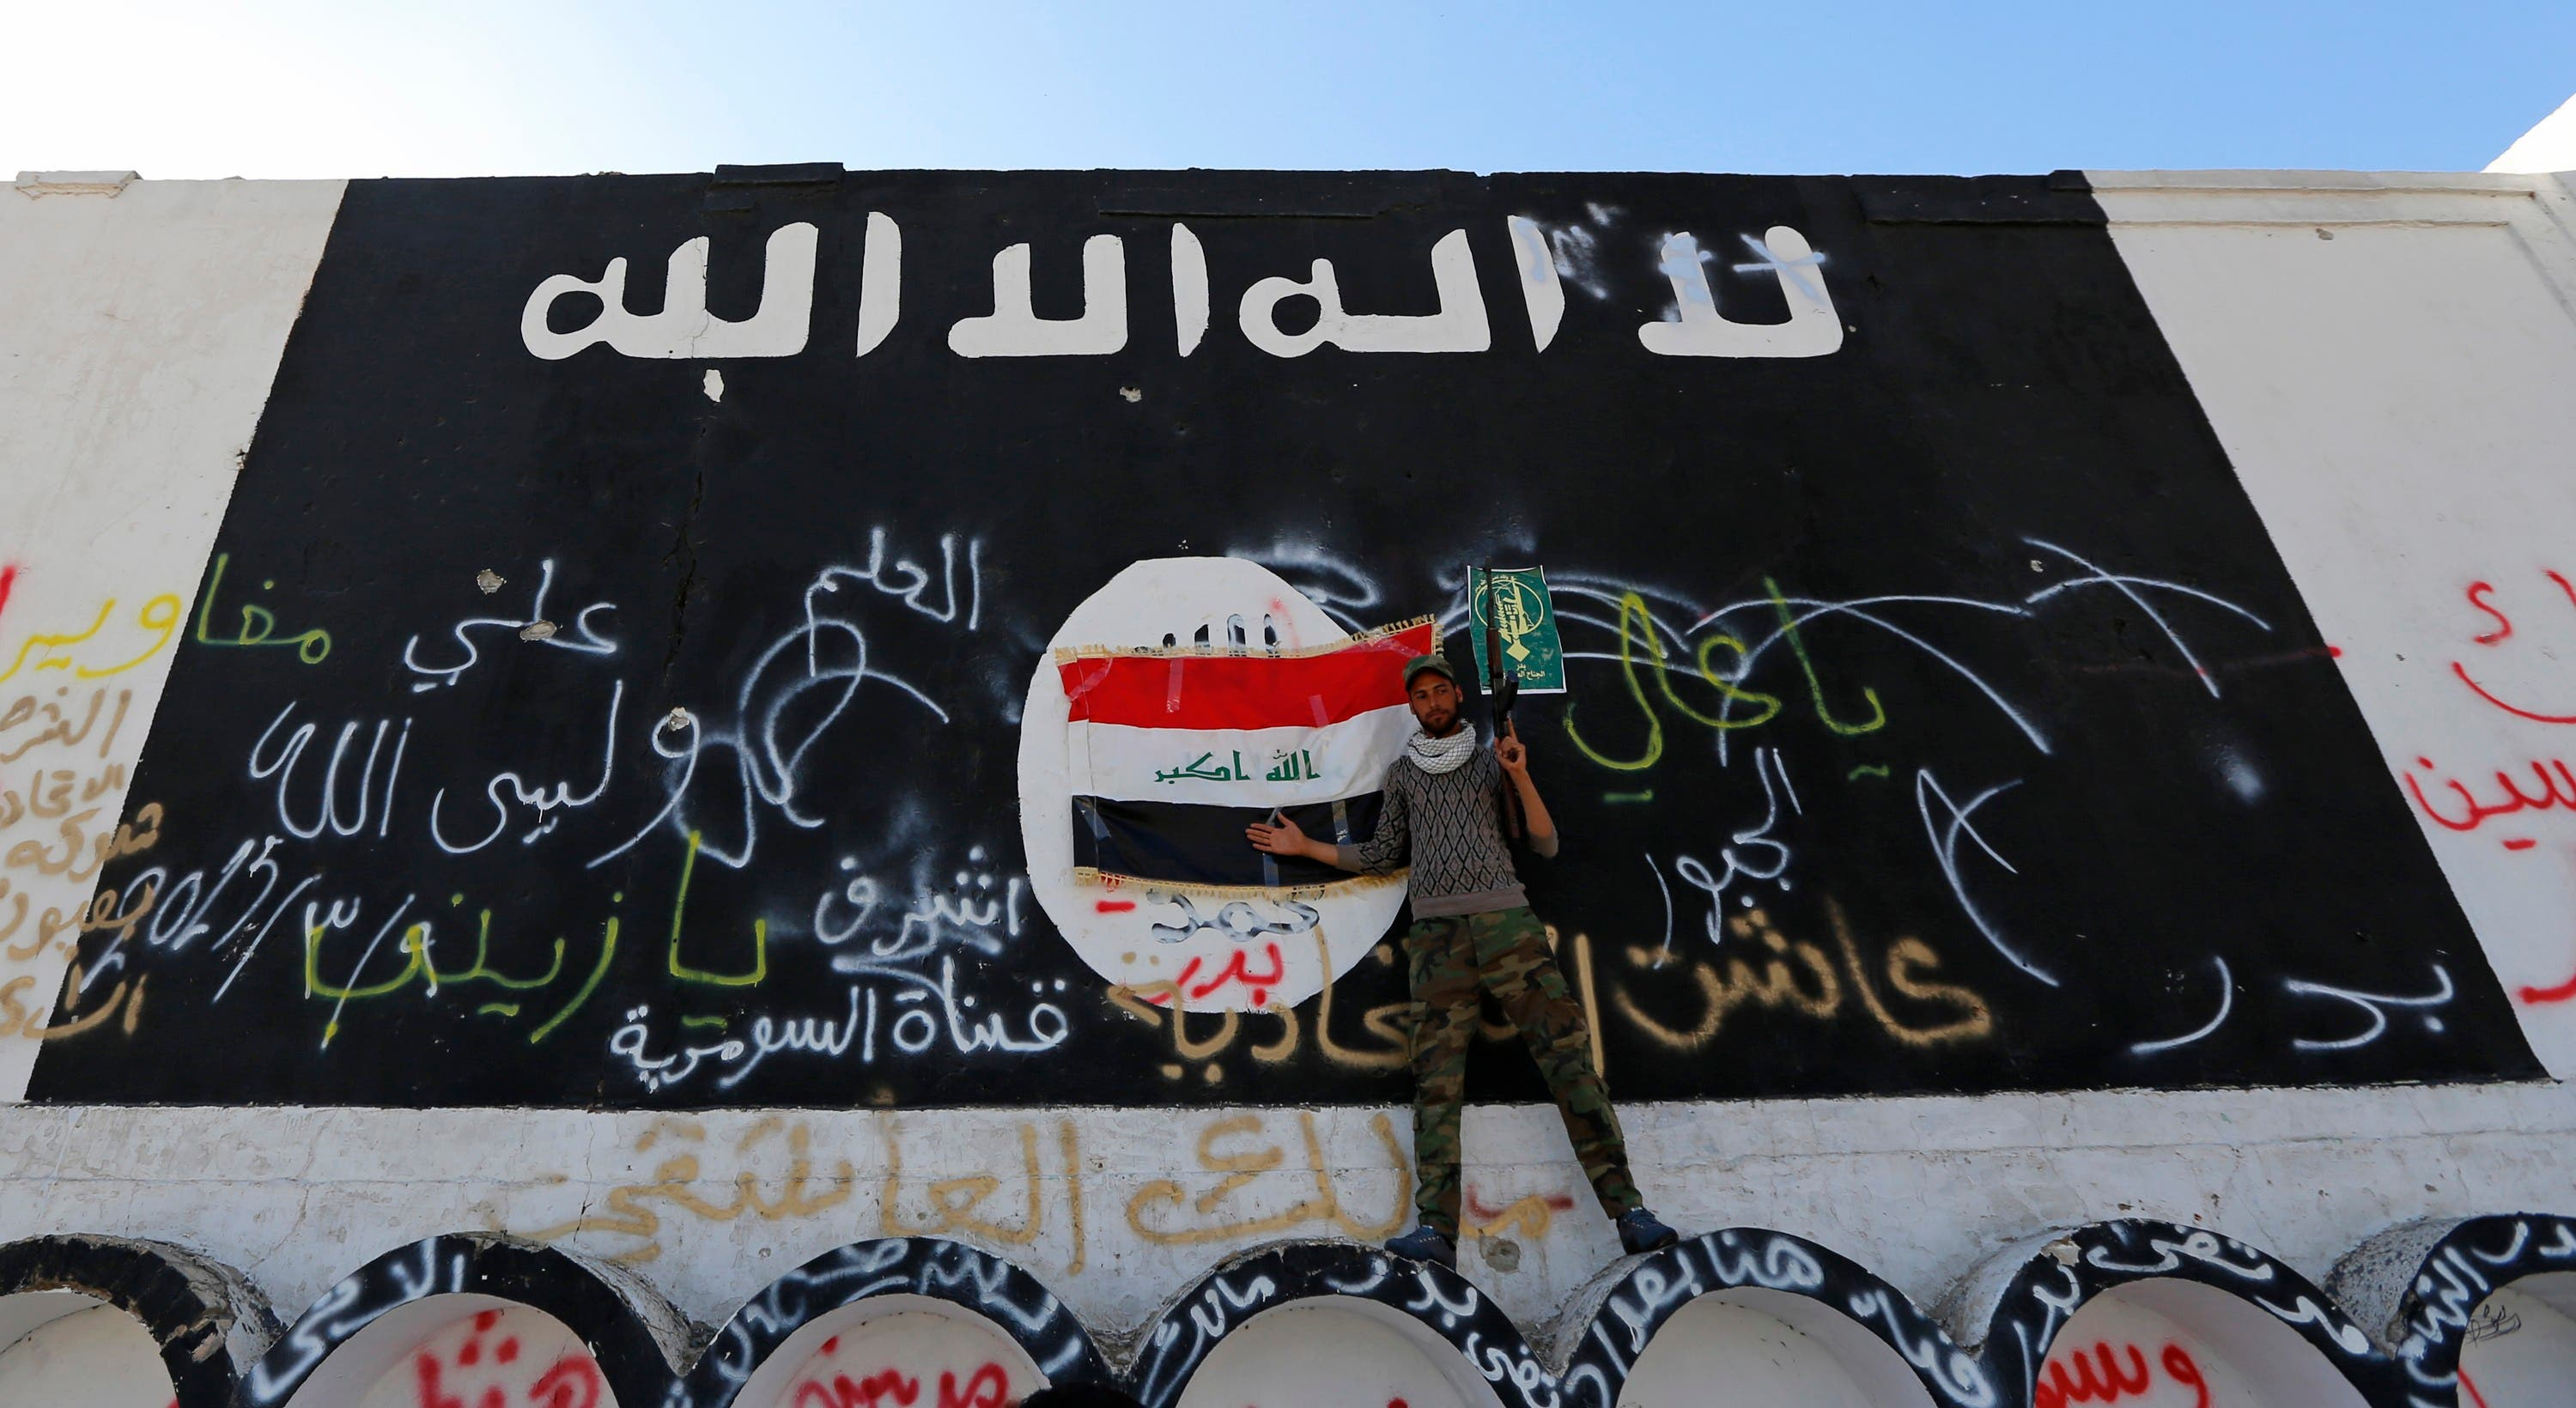 A member of militias known as Hashid Shaabi stands next to a wall painted with the black flag commonly used by Islamic State militants, in the town of al-Alam March 10, 2015. (Reuters)